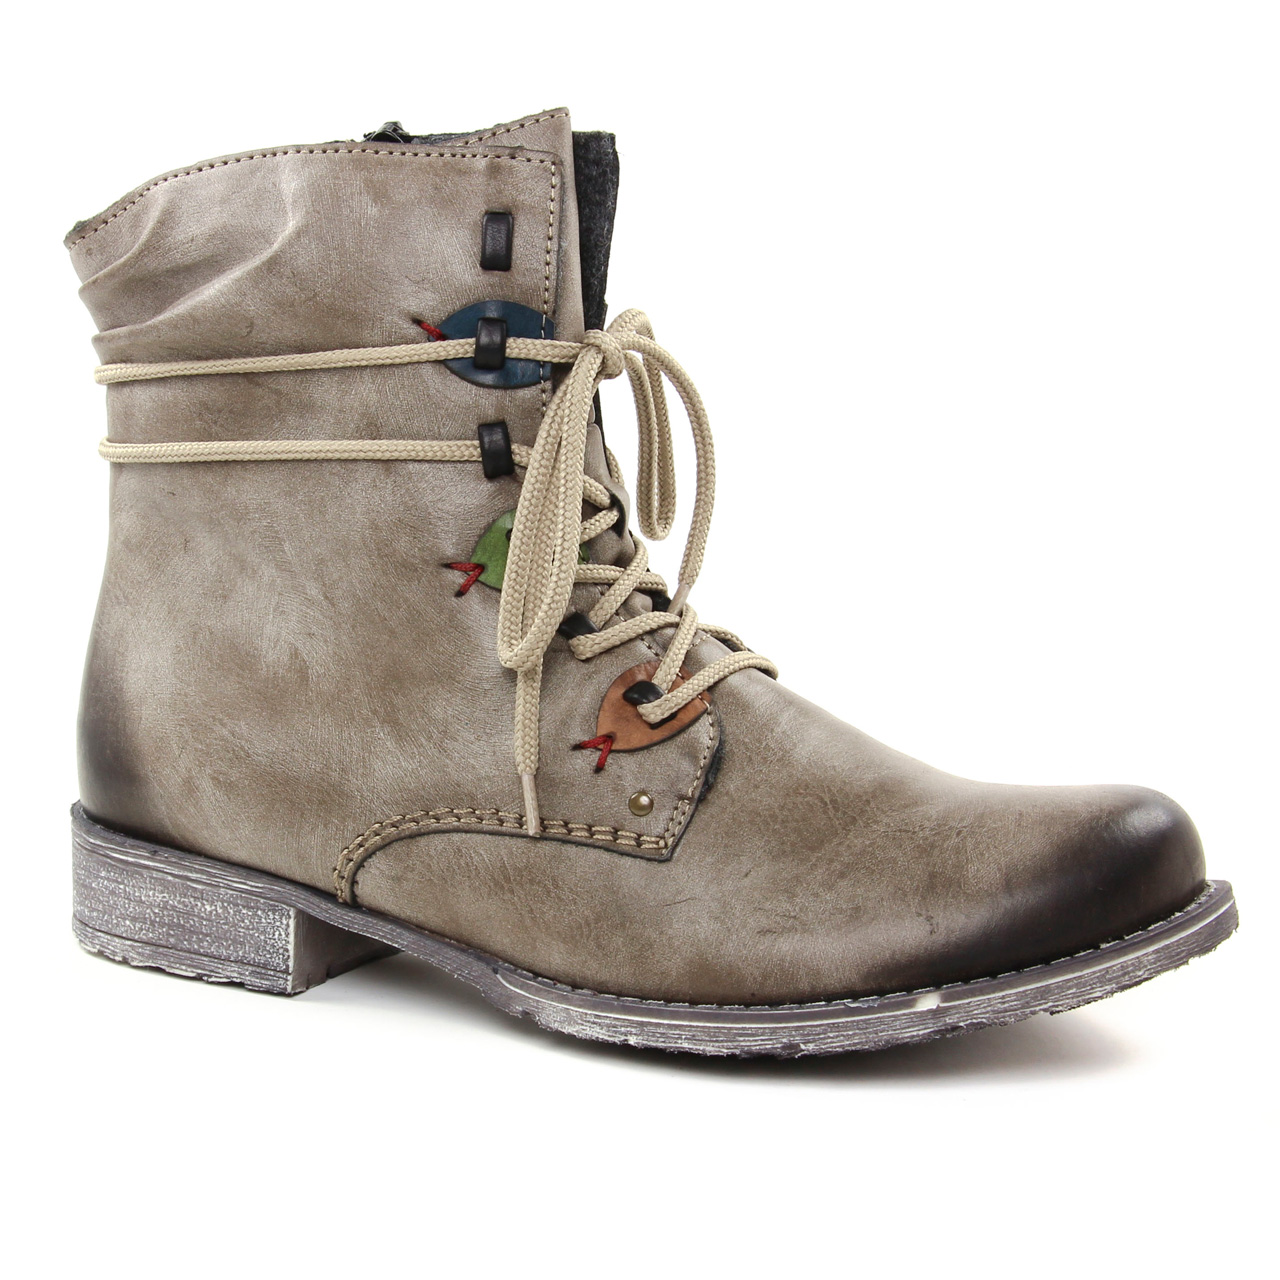 Rieker 70827 26 Cigare | boots beige taupe automne hiver